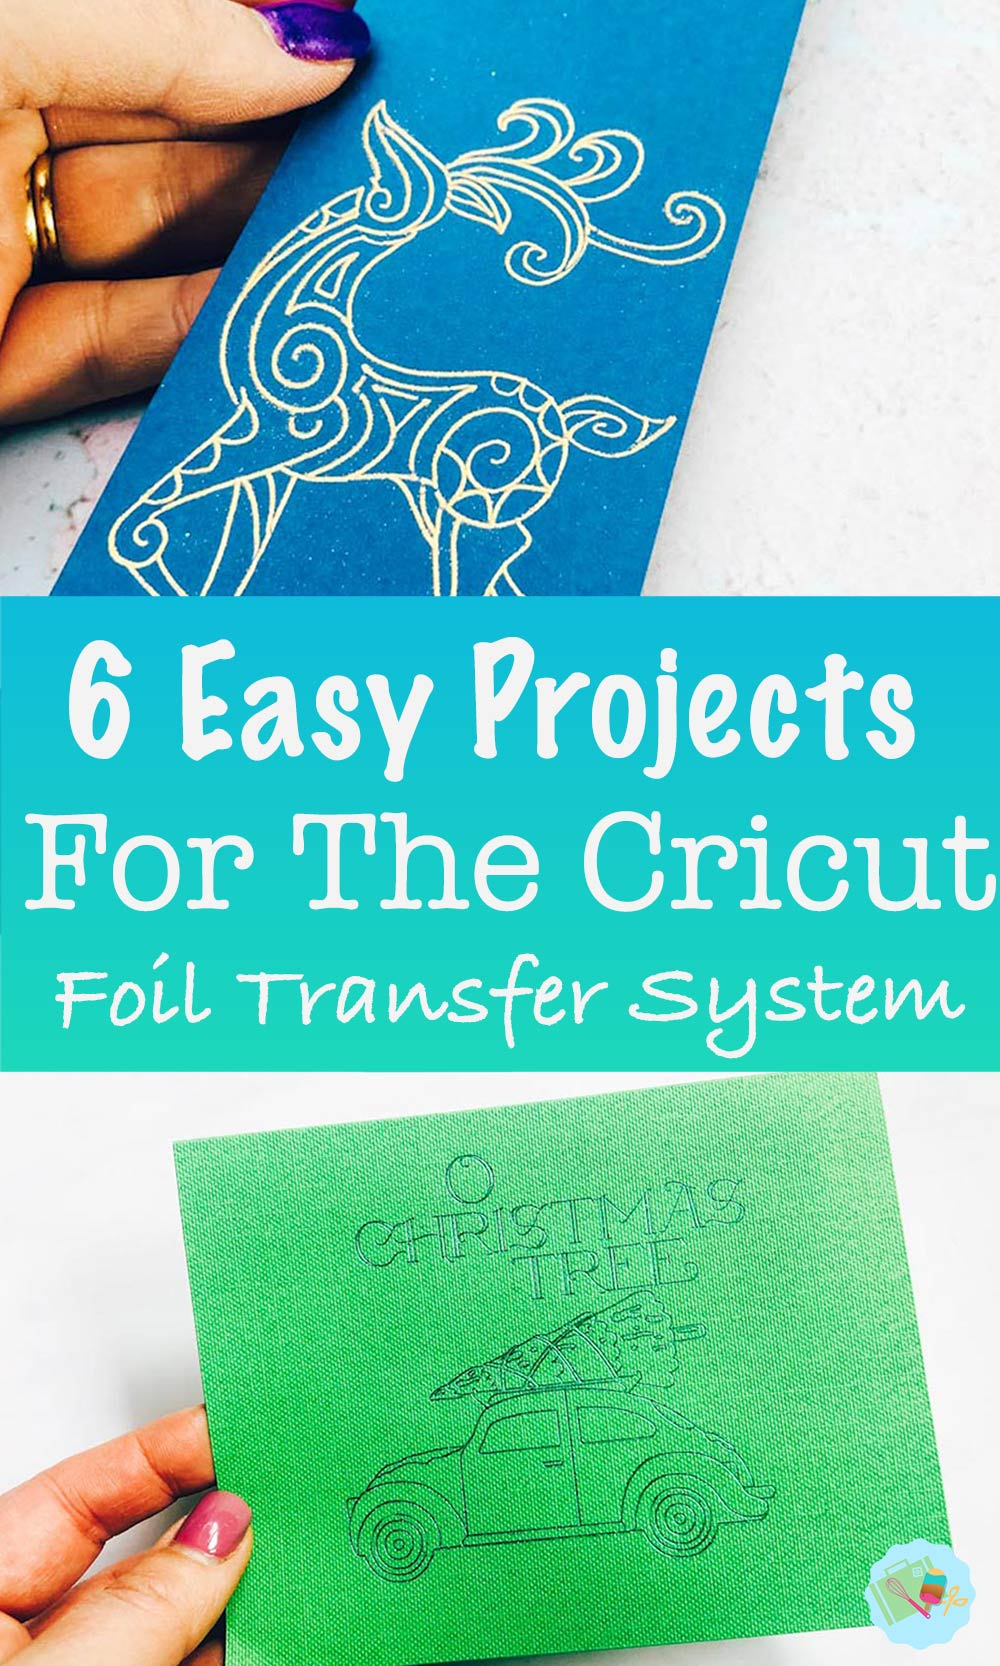 6 easy projects for the Cricut Foil Transfer system